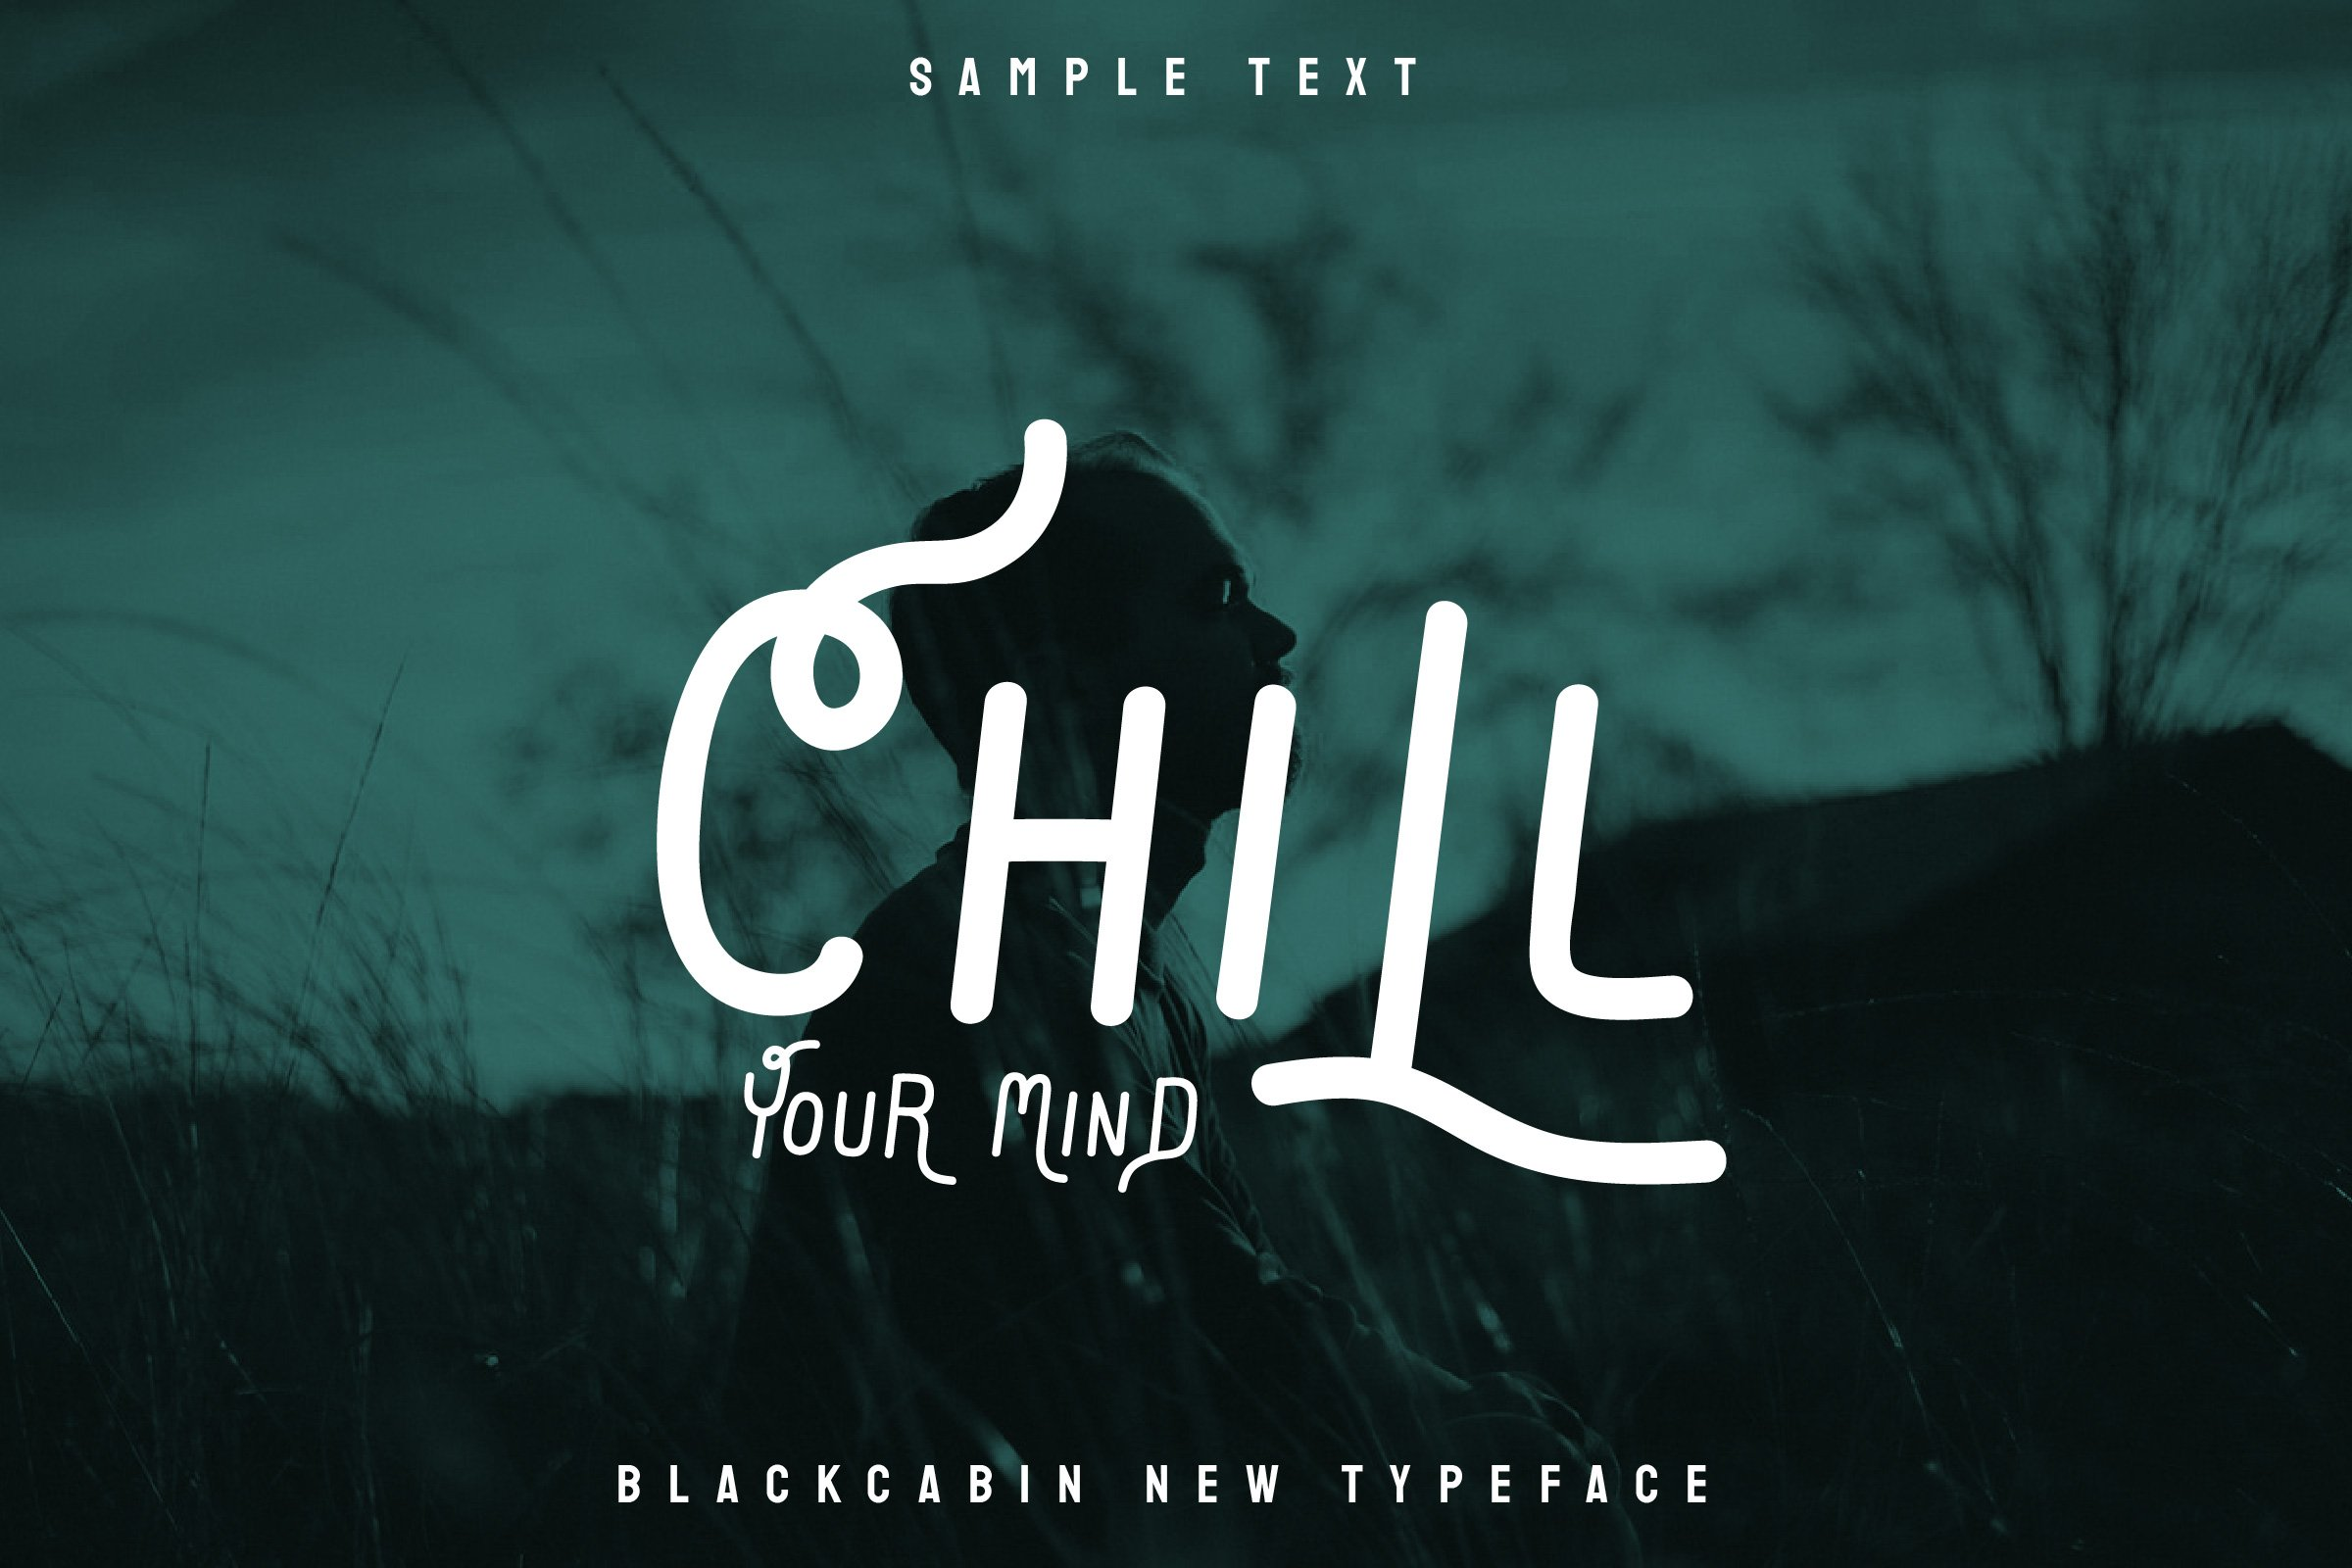 A beautiful stylish font with unusual curled limbs.